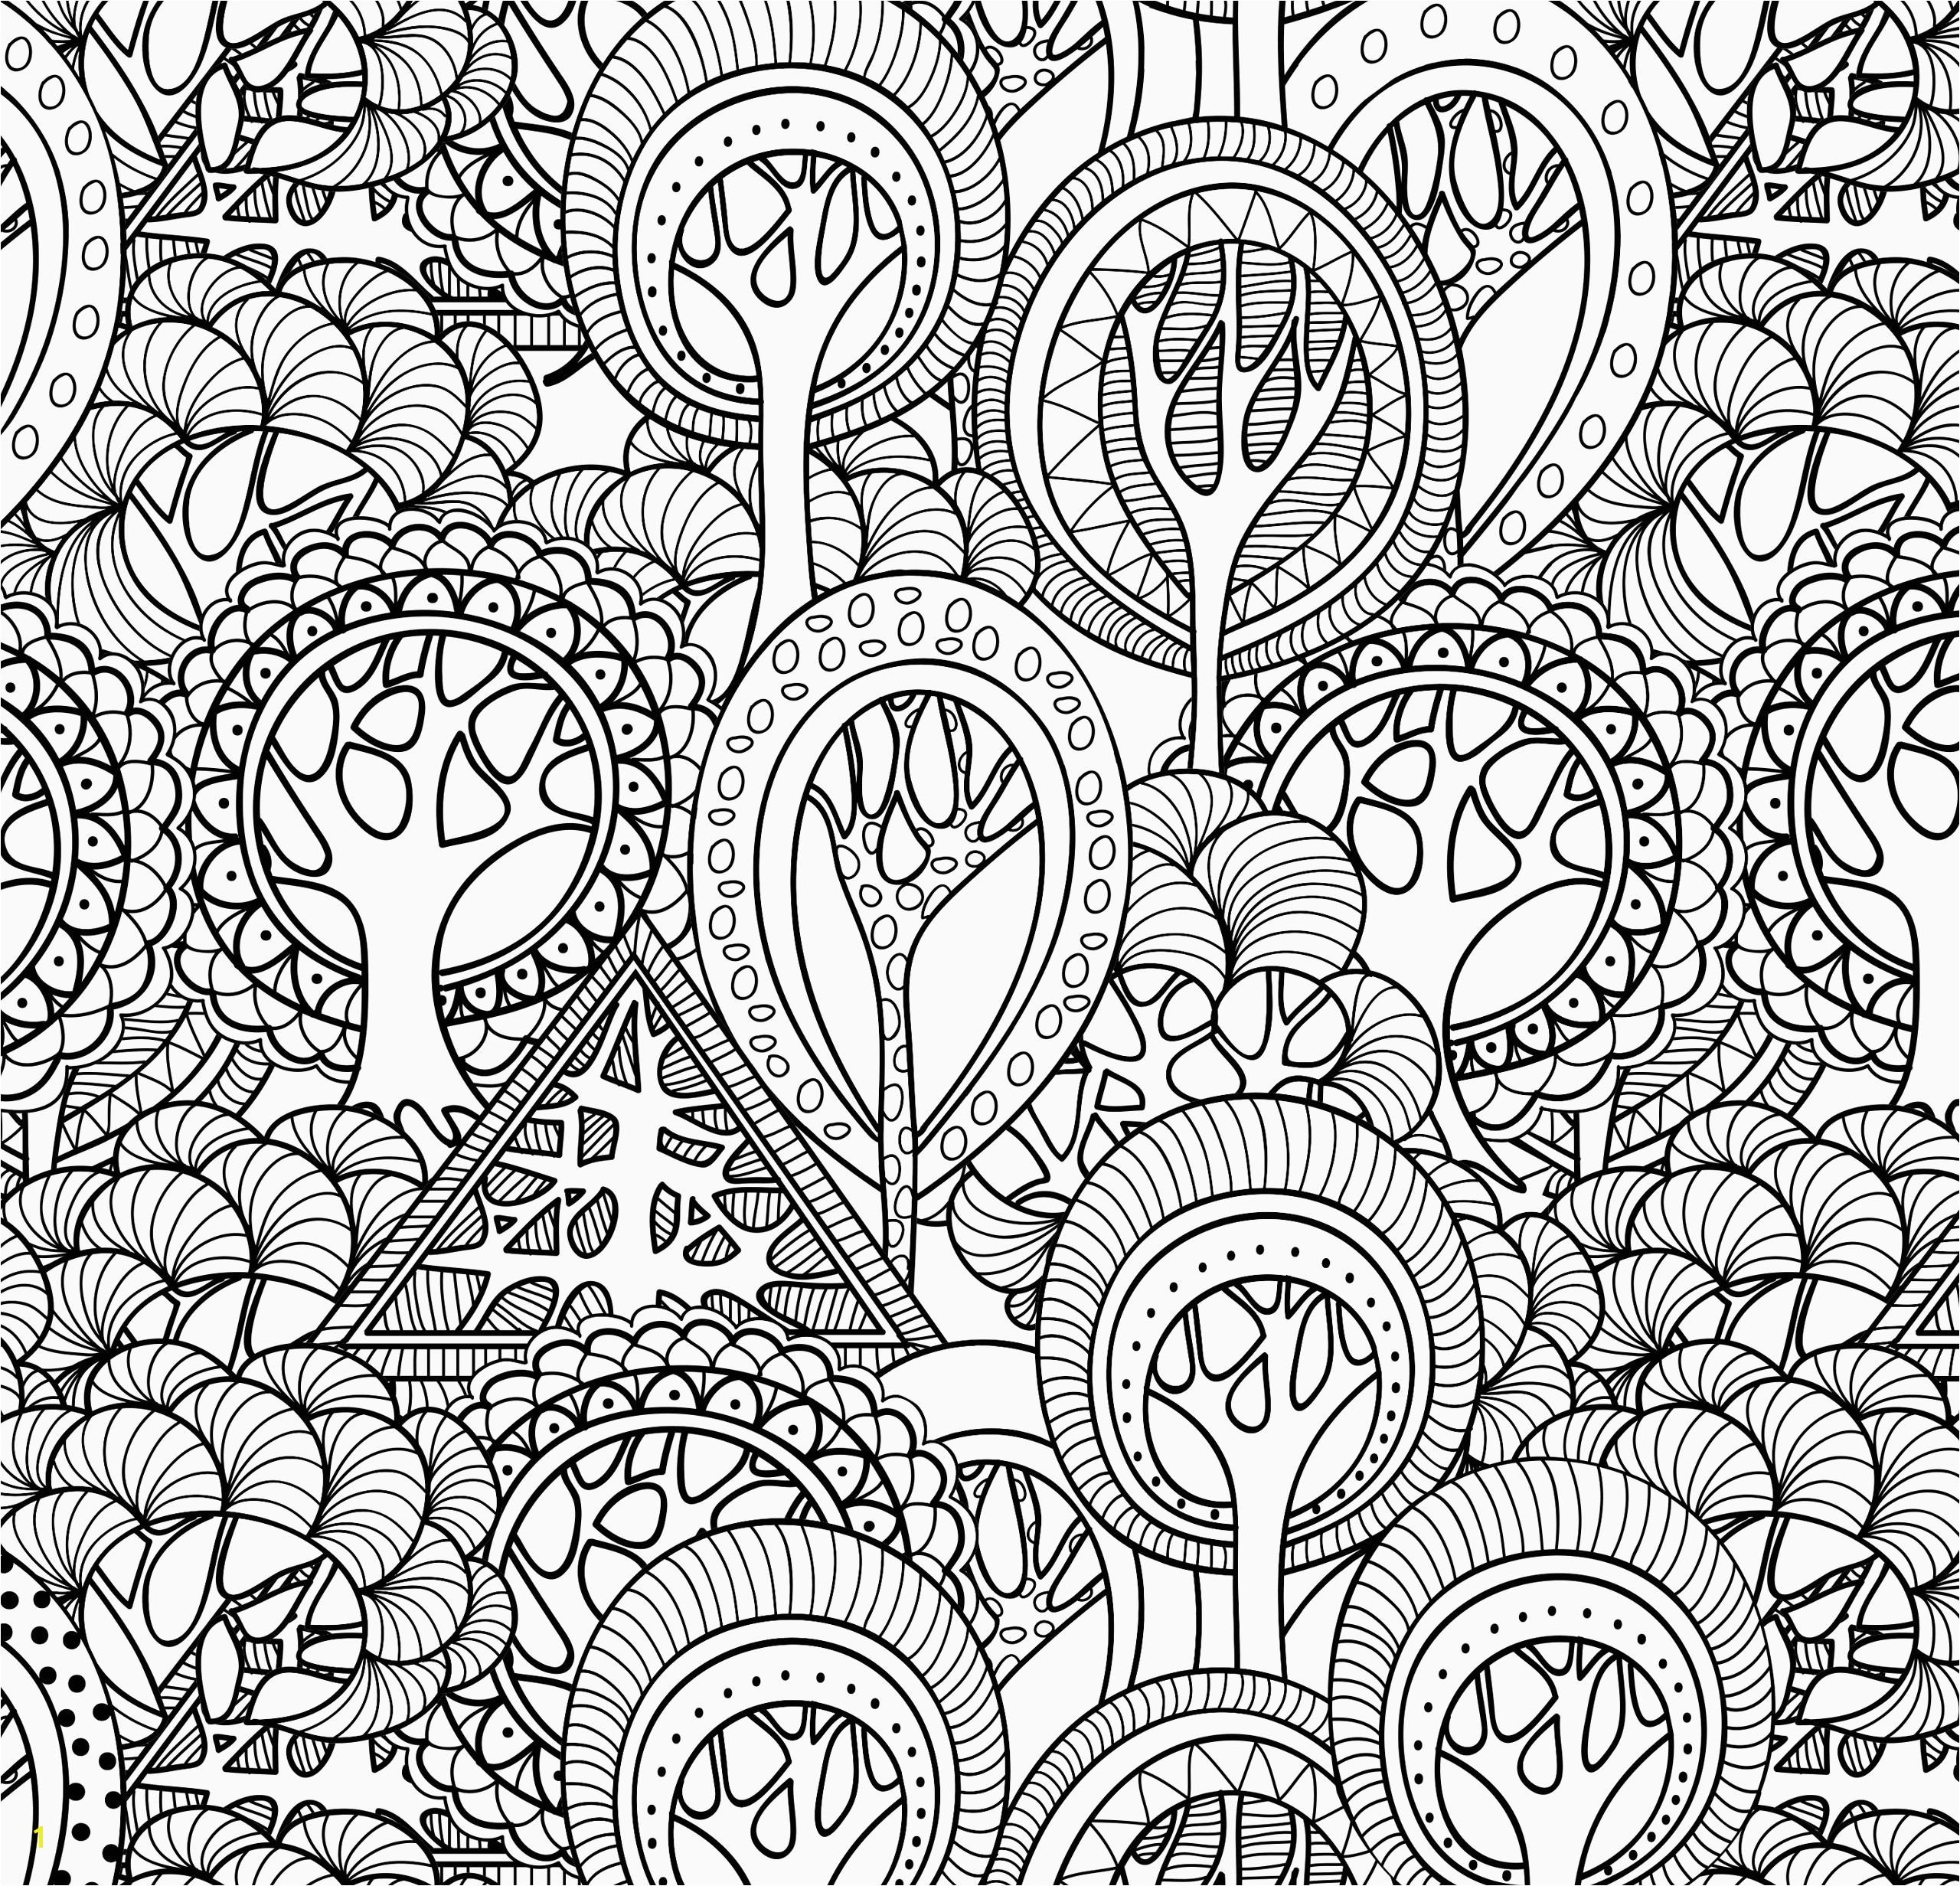 Free butterfly Coloring Pages Lovely Free Coloring Pages Printables New Cool Coloring Page for Adult Od